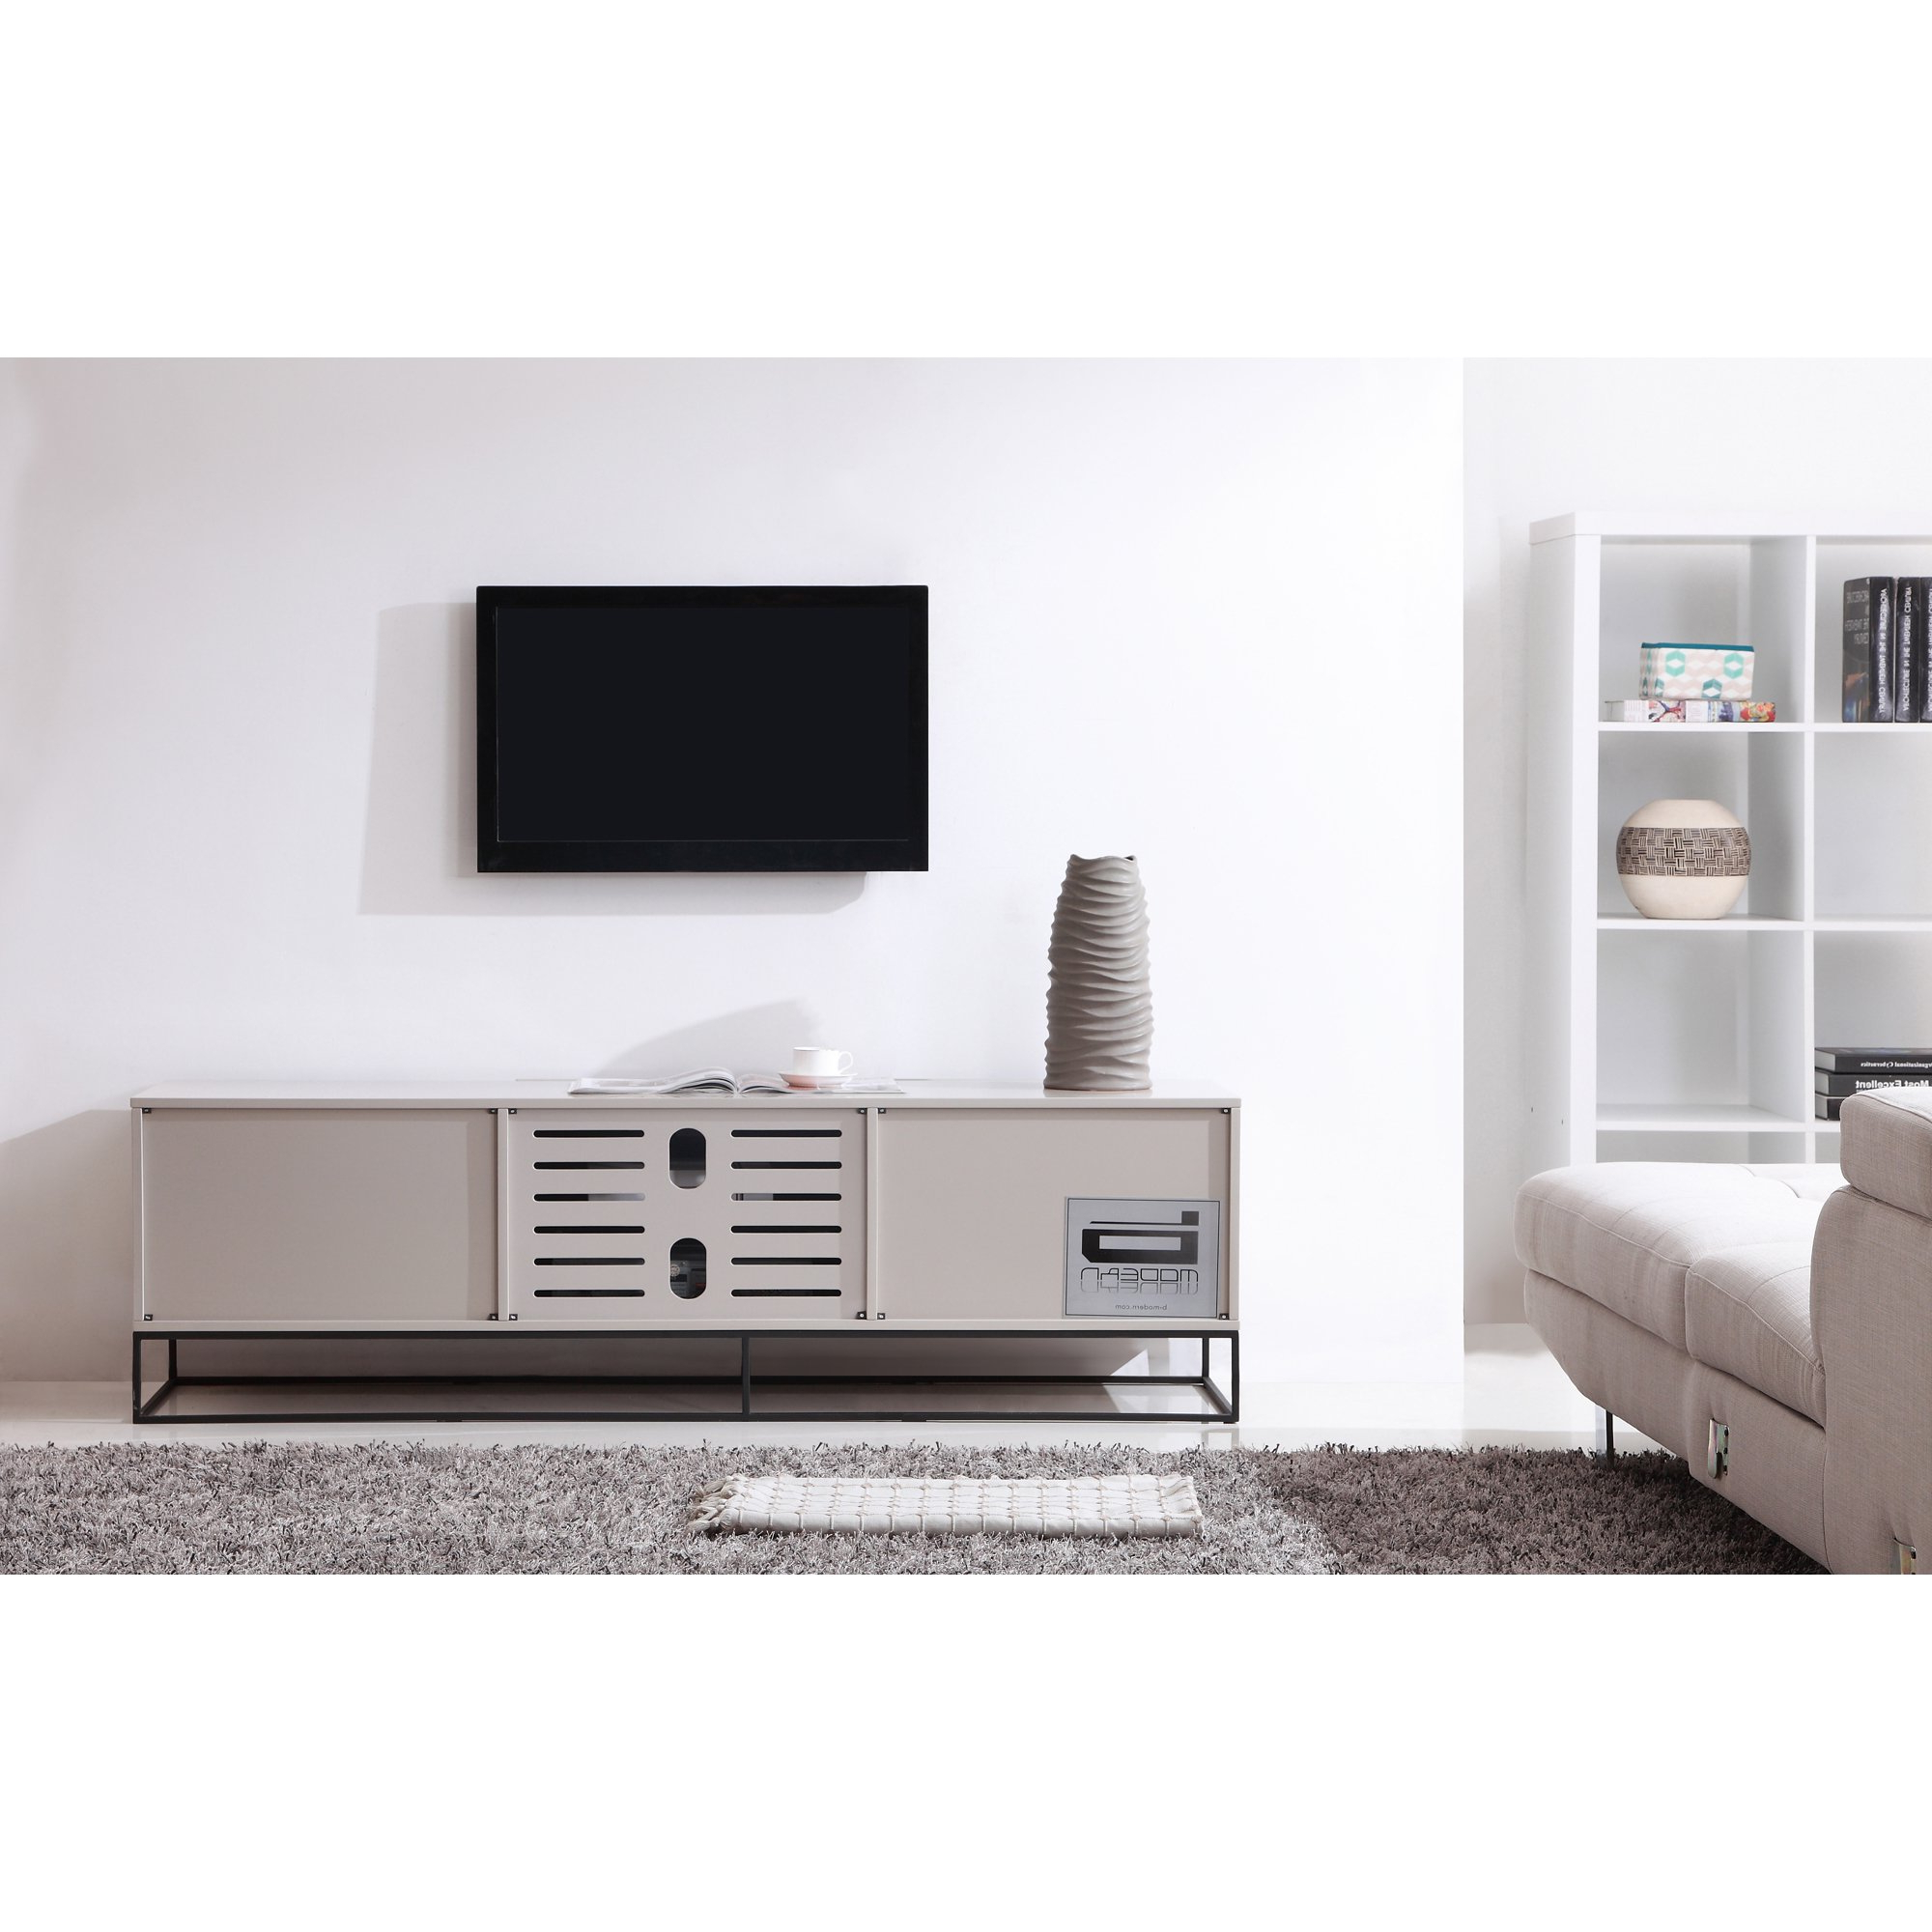 Preferred Shop B Modern Animator High Gloss Cream/ Black Modern Ir Tv Stand For Cream Gloss Tv Stands (View 20 of 20)